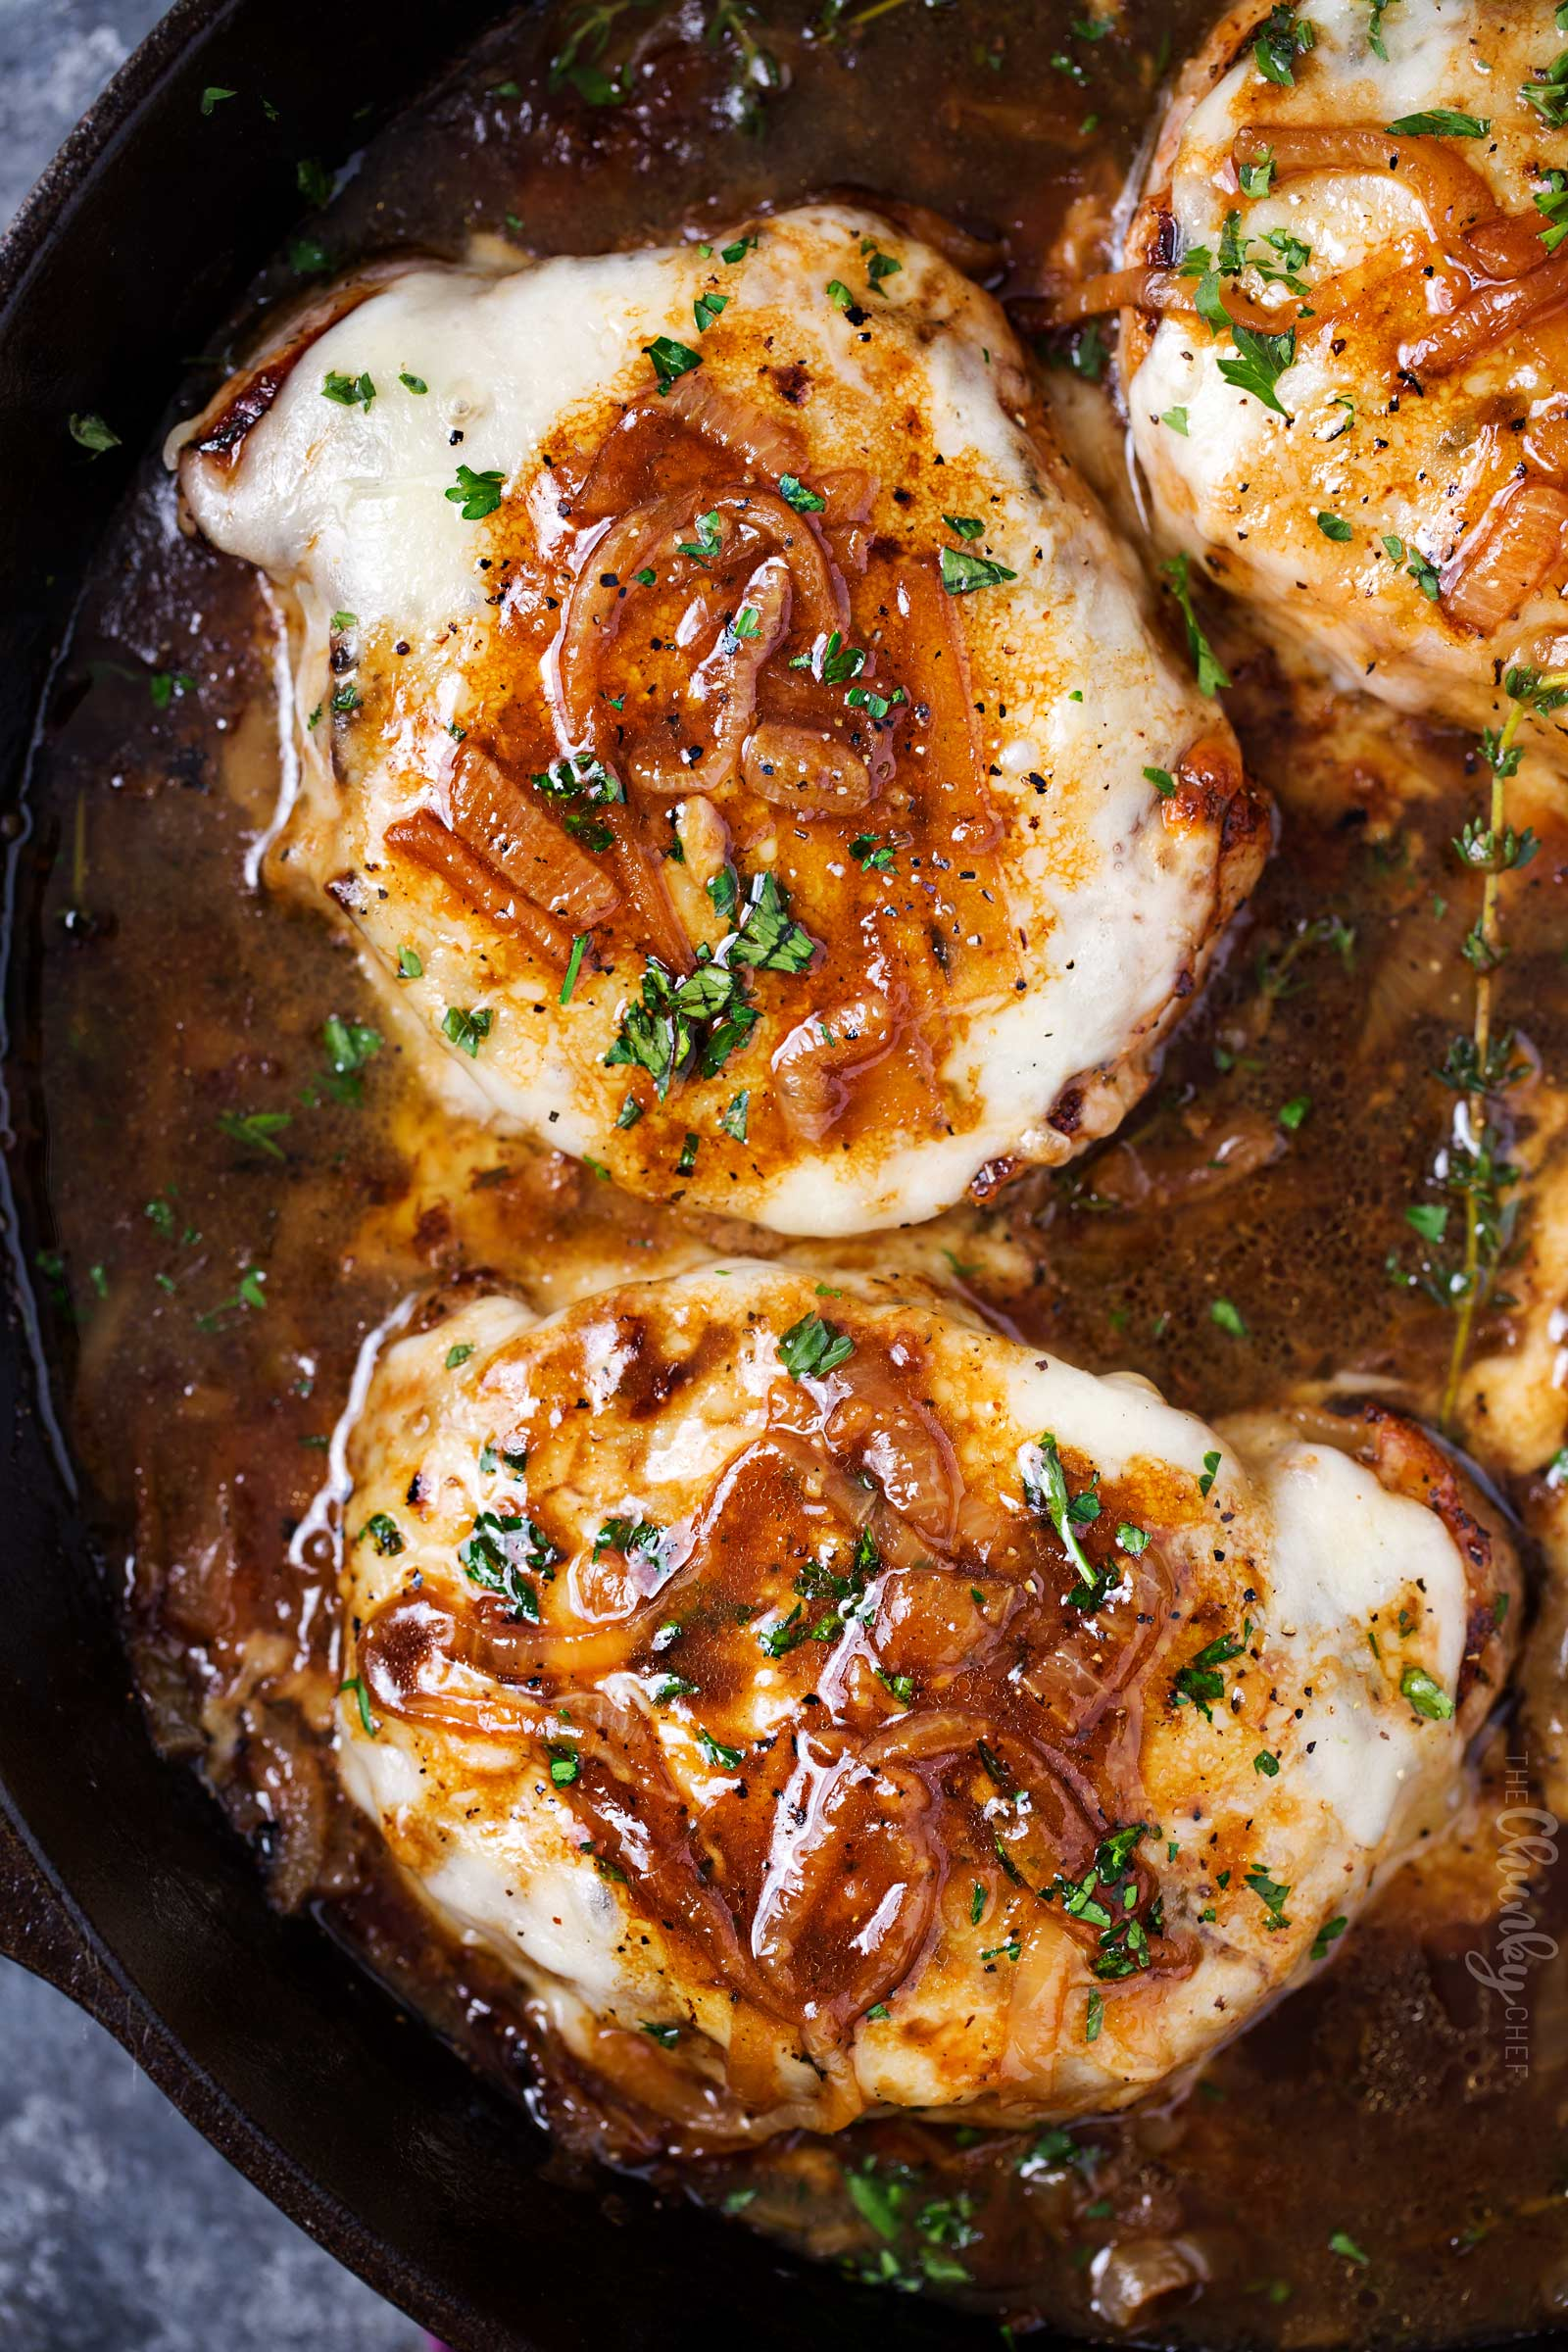 Overheat view of smothered pork chops in skillet